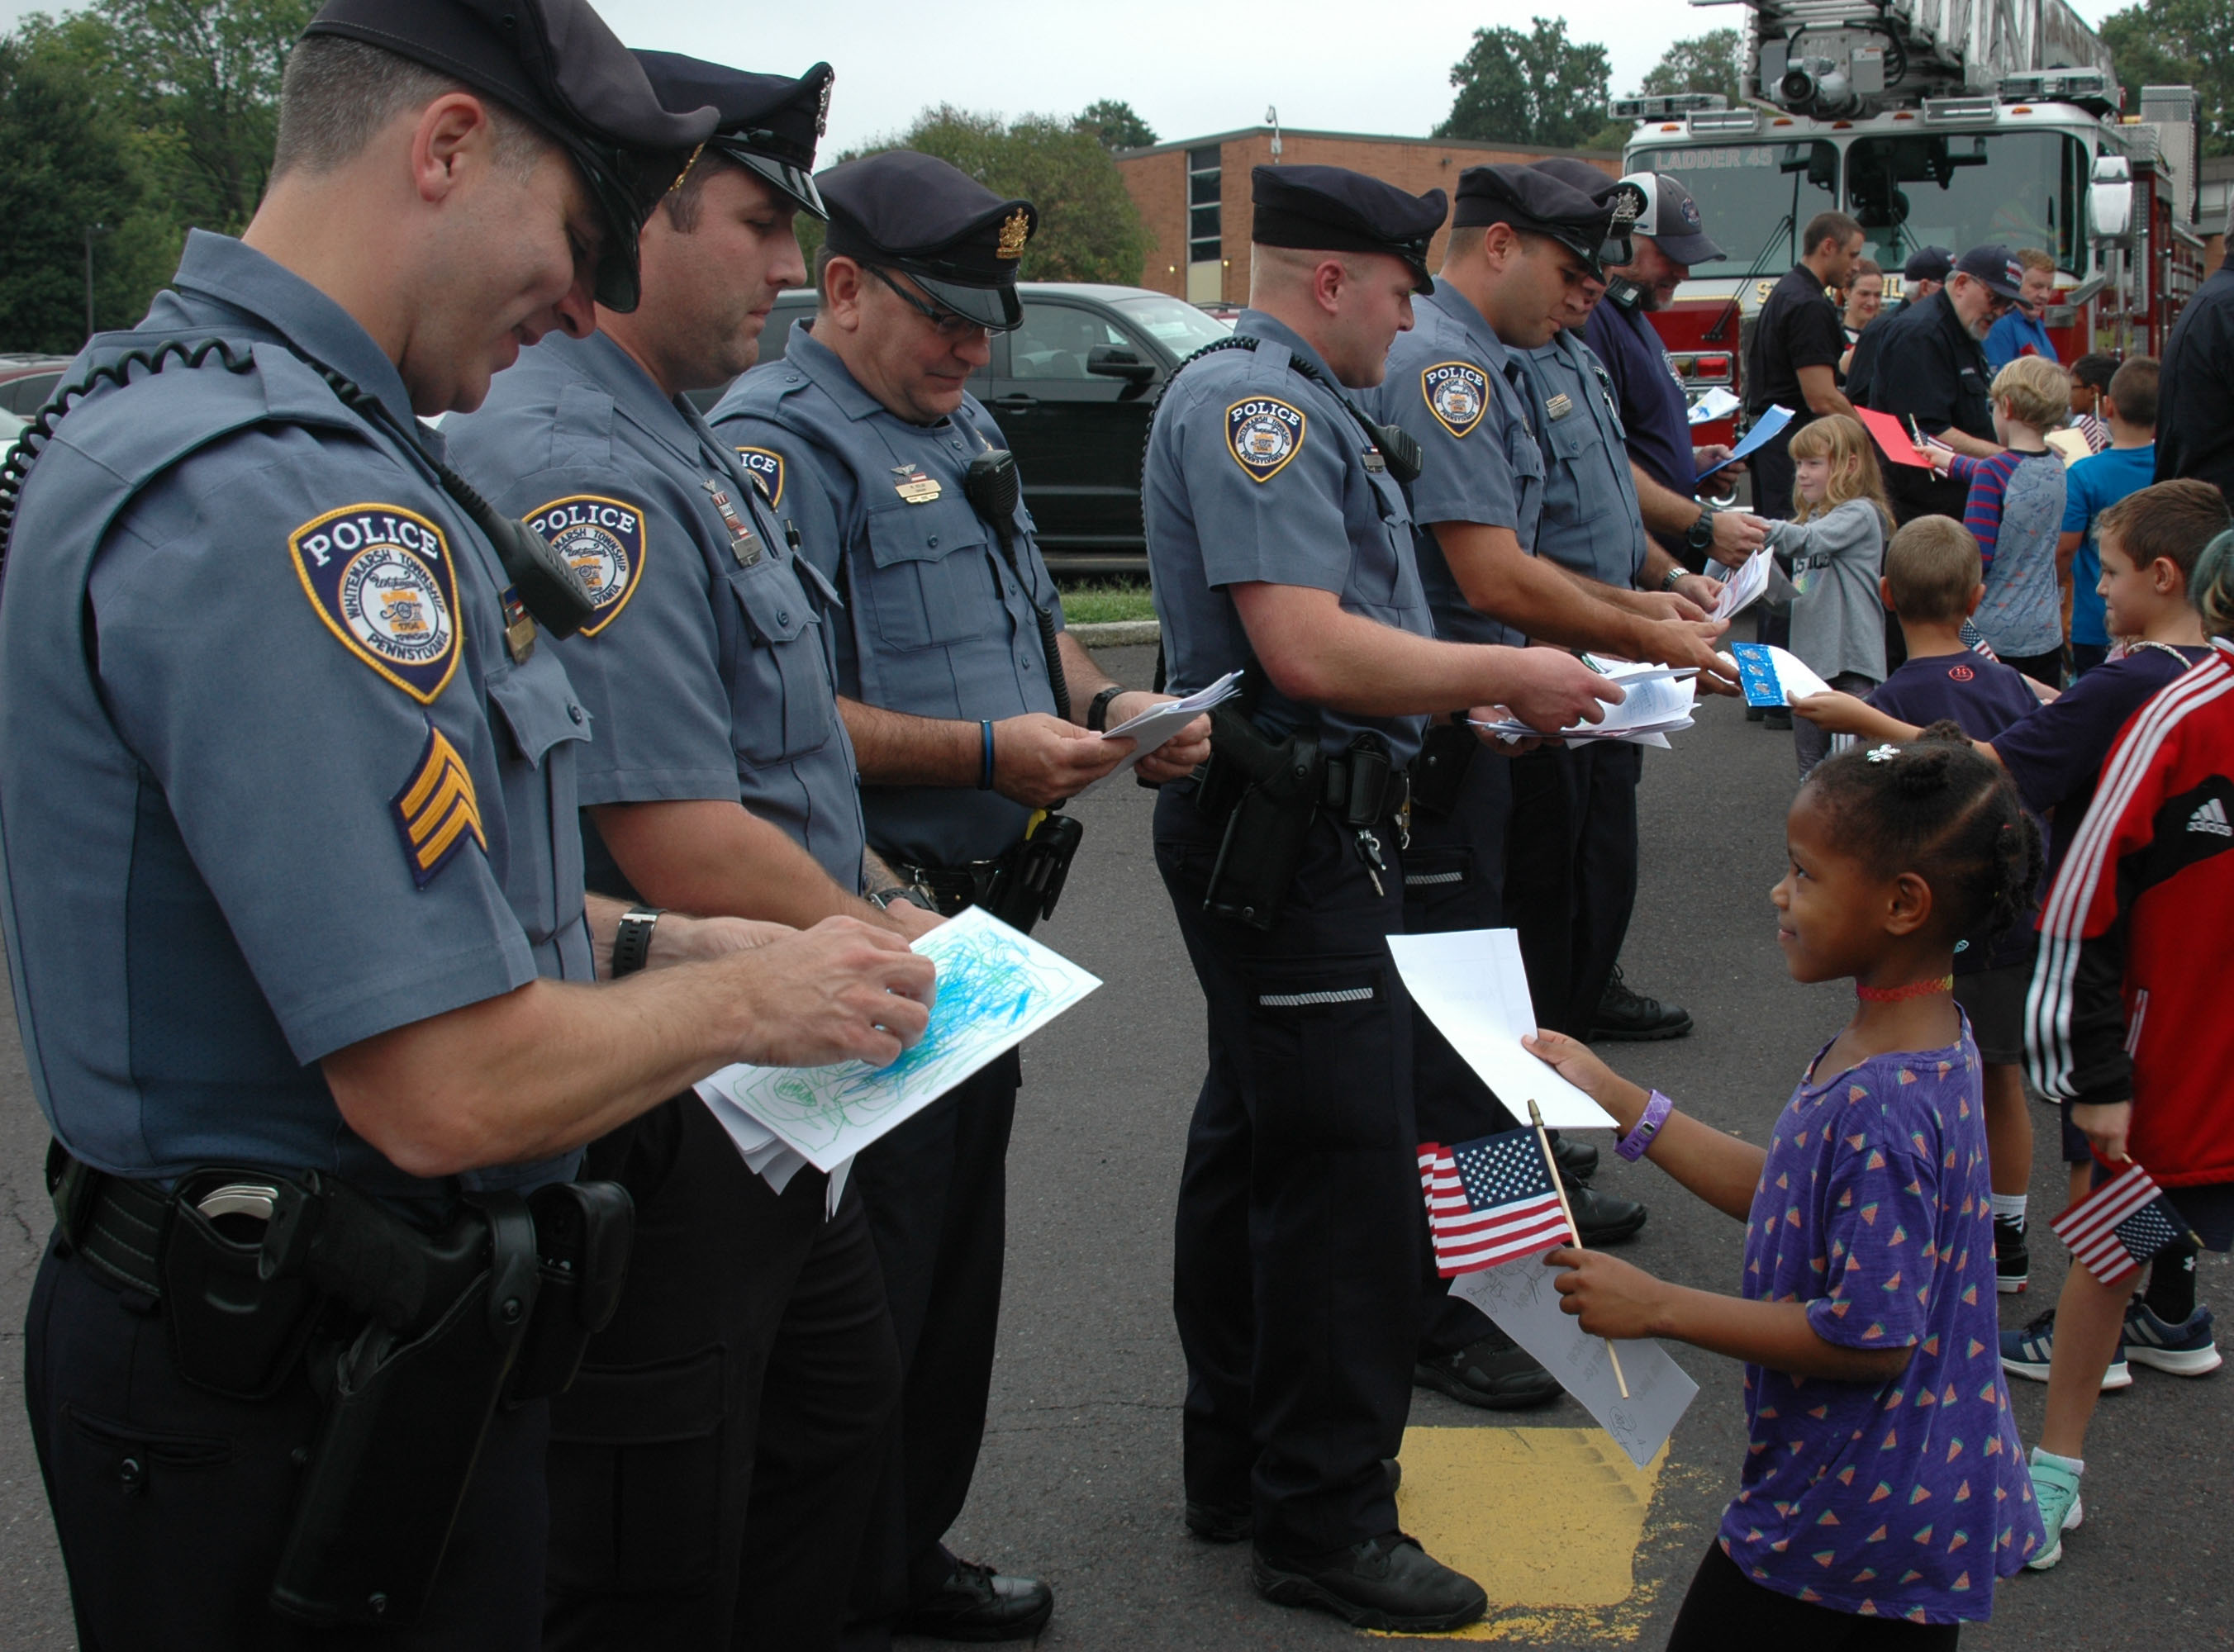 A line of a half dozen police officers being handed cards by small children